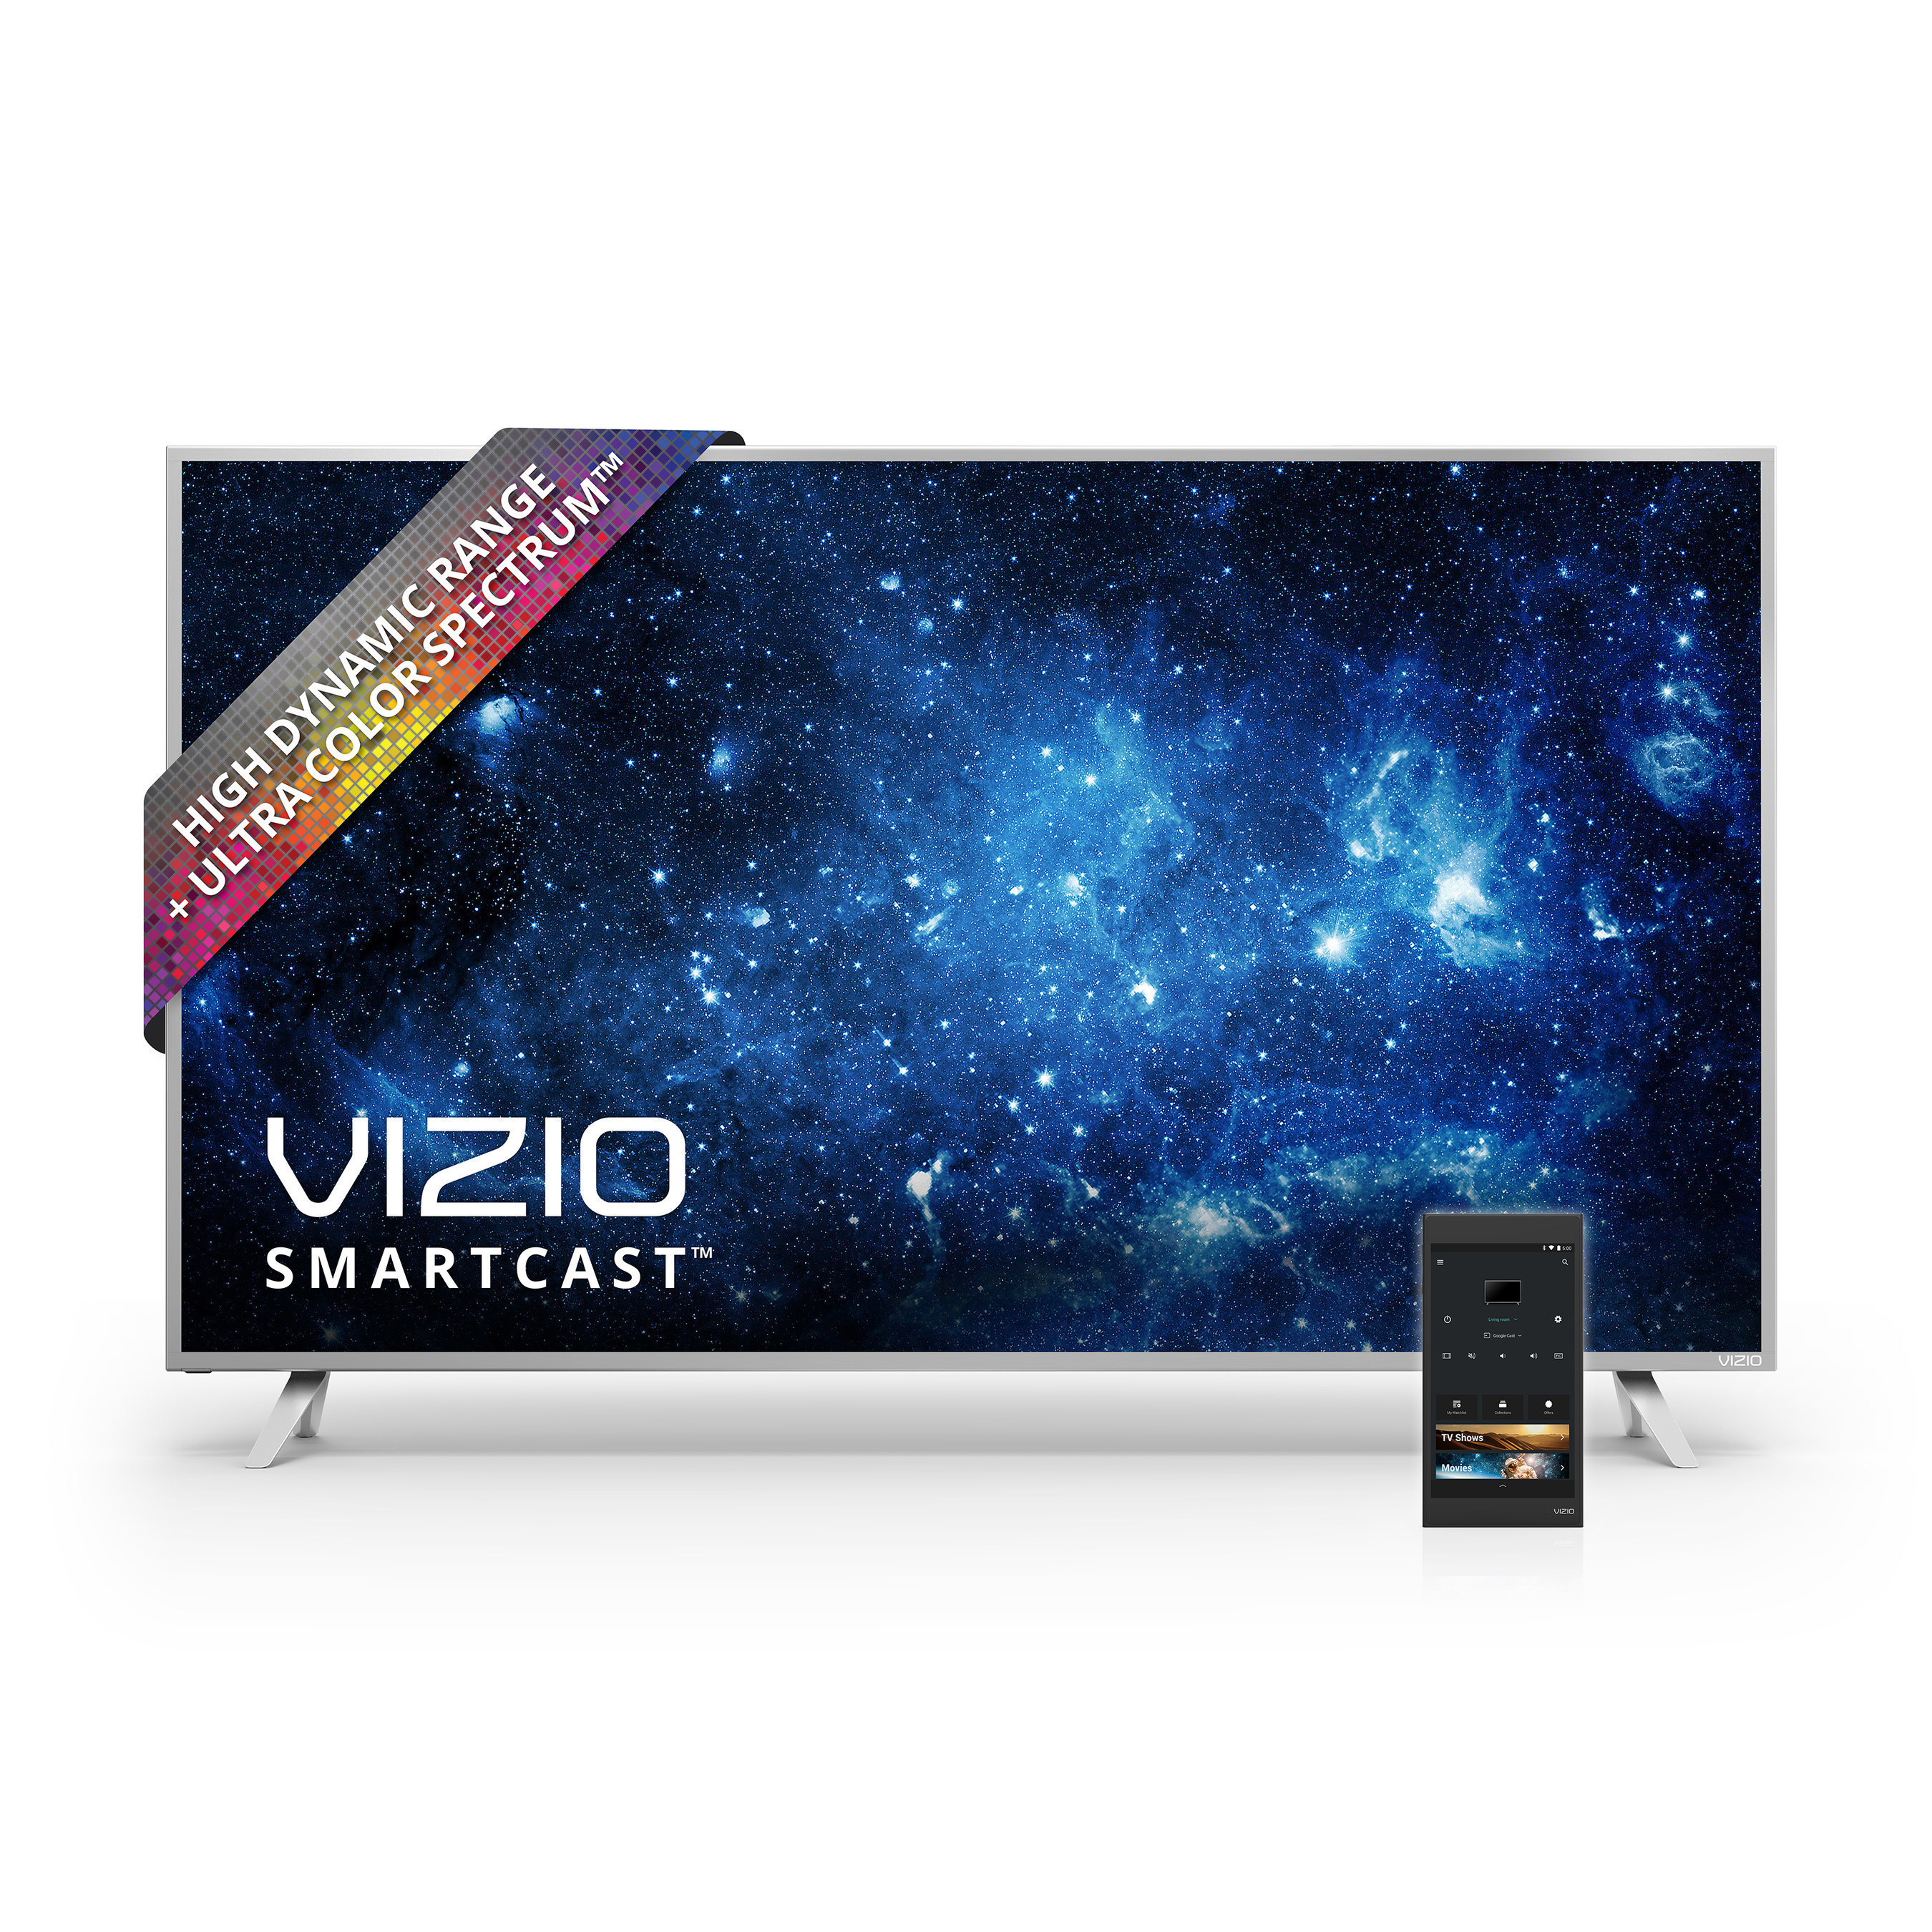 VIZIO Begins Roll Out of Updated Firmware for VIZIO SmartCast P-Series and  M-Series Ultra HD HDR Home Theater Displays to Support HDR10 Format. New Update Enables Support for Existing HDR Blu-ray Players and Continues Support for Expanded Collection of Dolby Vision HDR Titles Available Through Popular Streaming App VUDU.